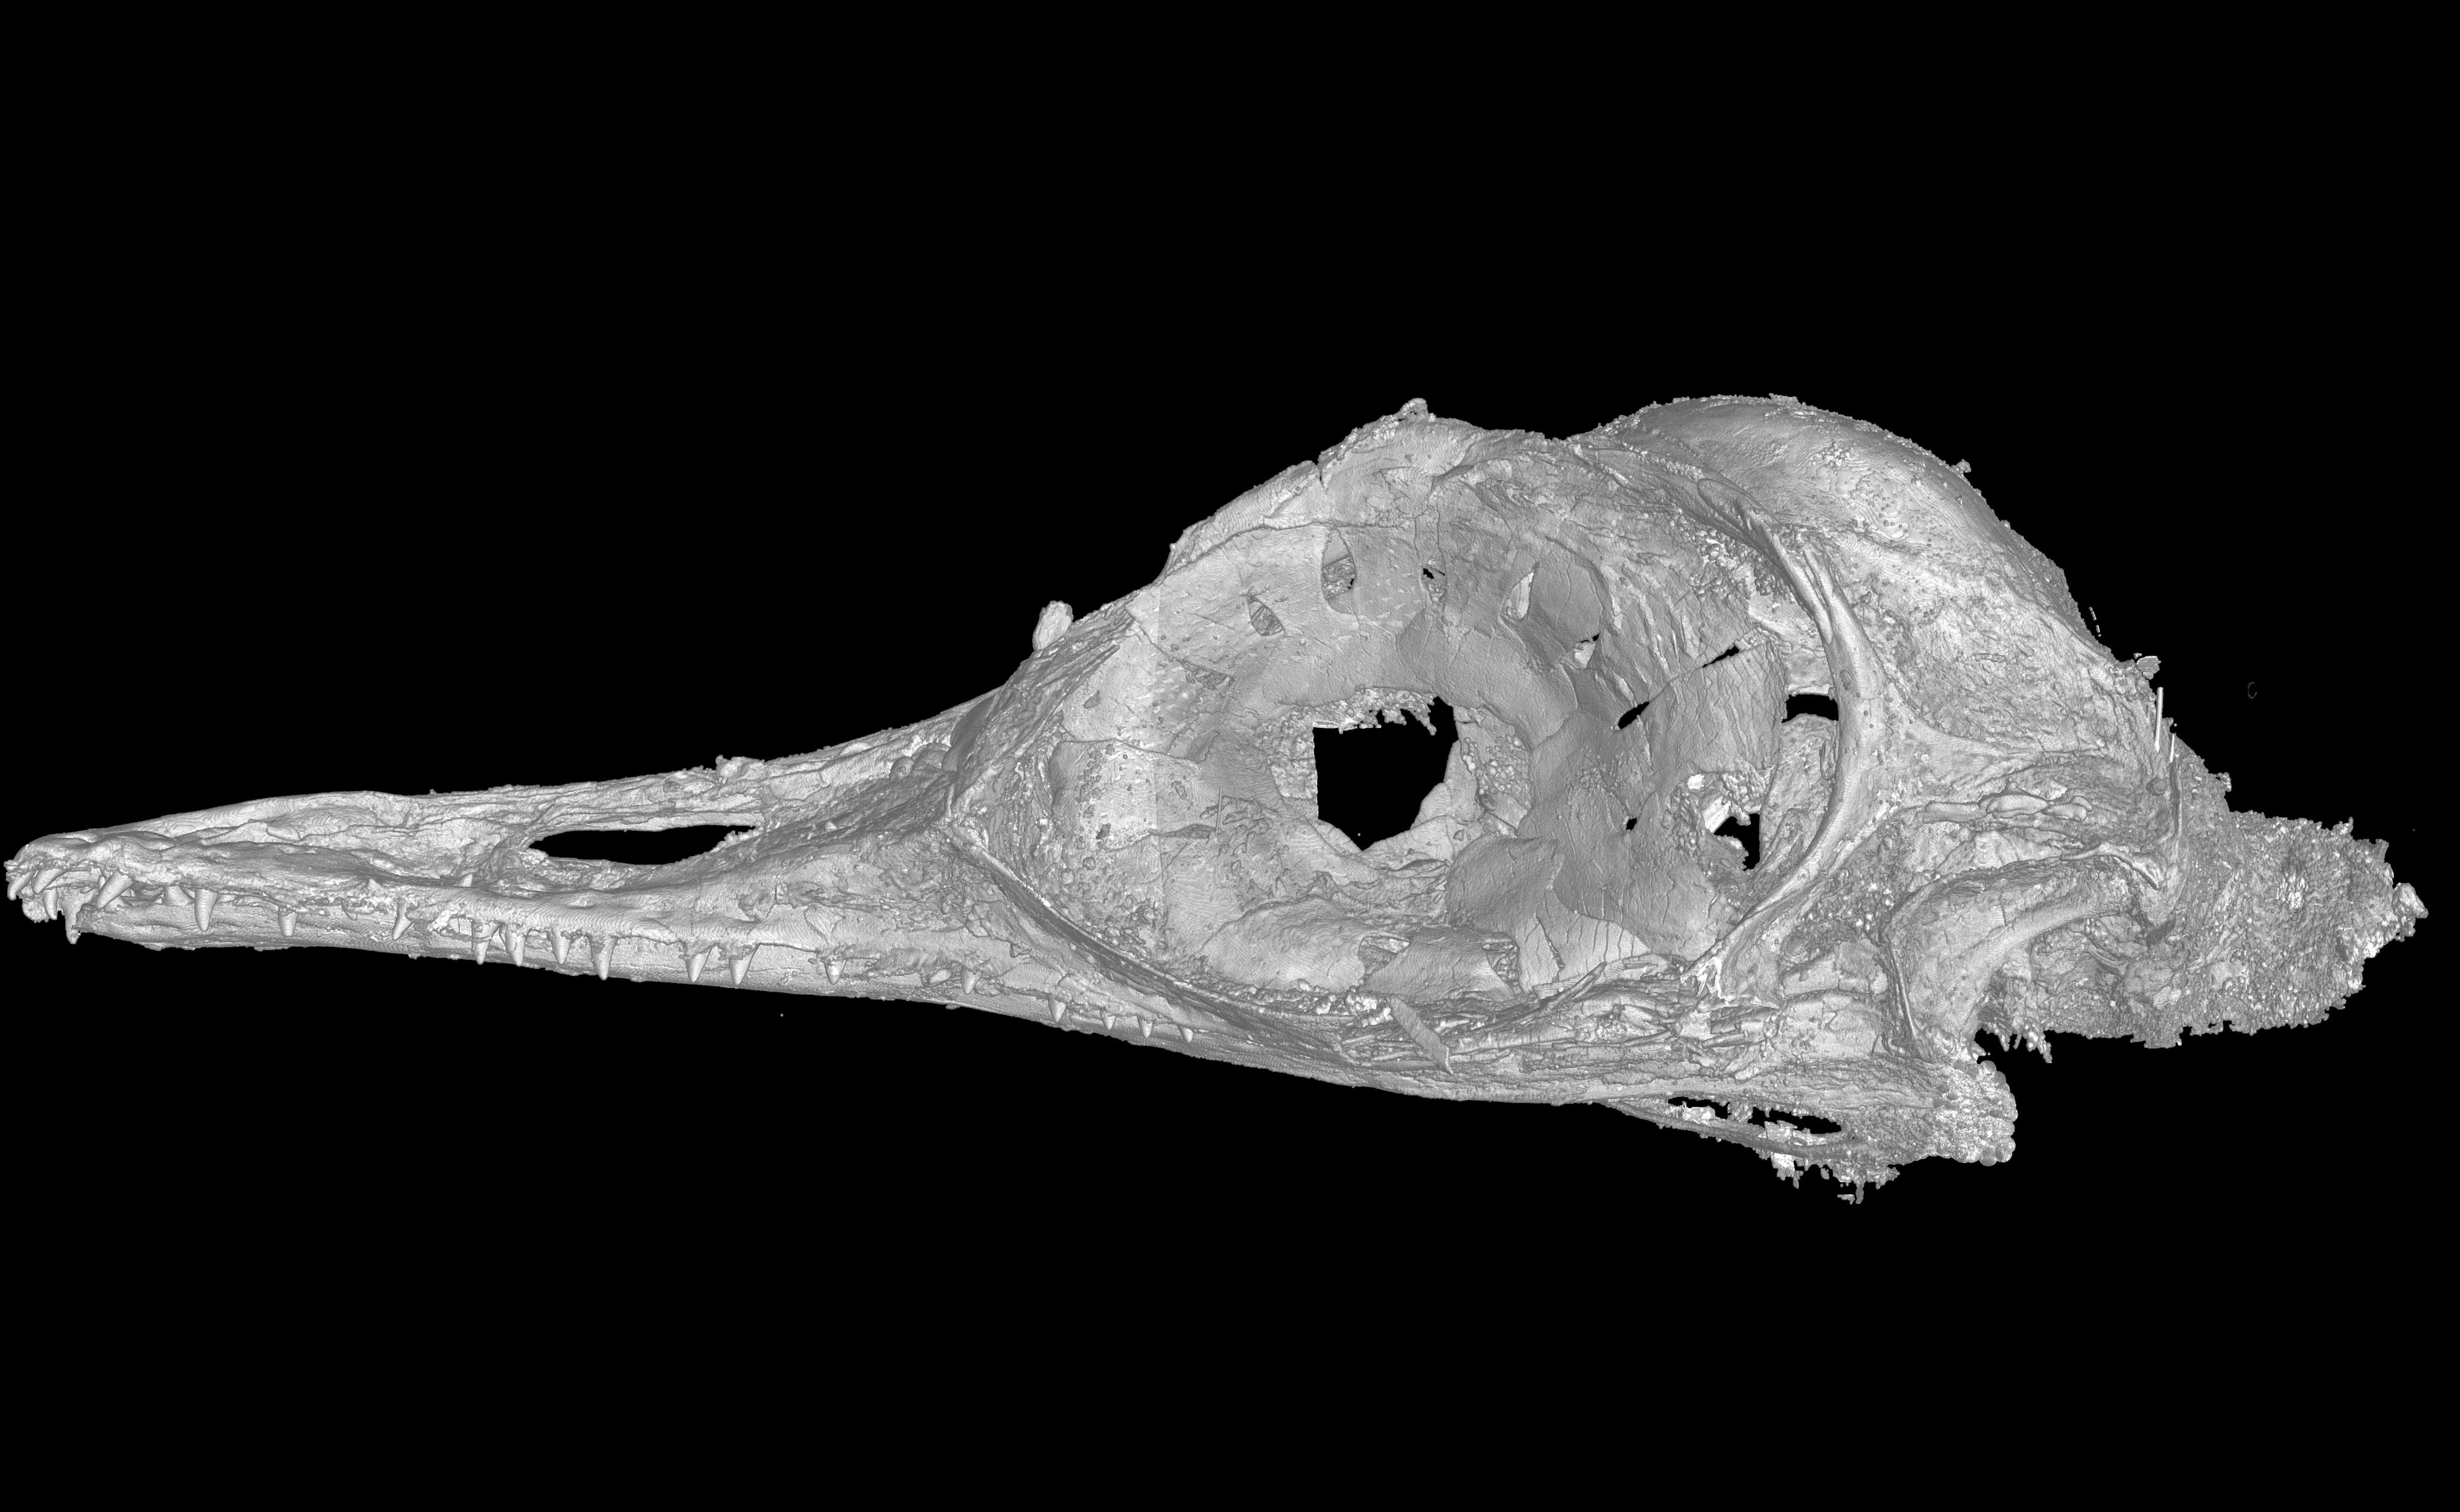 The skull of tiny bird Oculudentavis, whose name means eye-tooth-bird, named for its distinctive features is seen in a CT scan released March 11, 2020. (Li Gang/Handout via REUTERS)